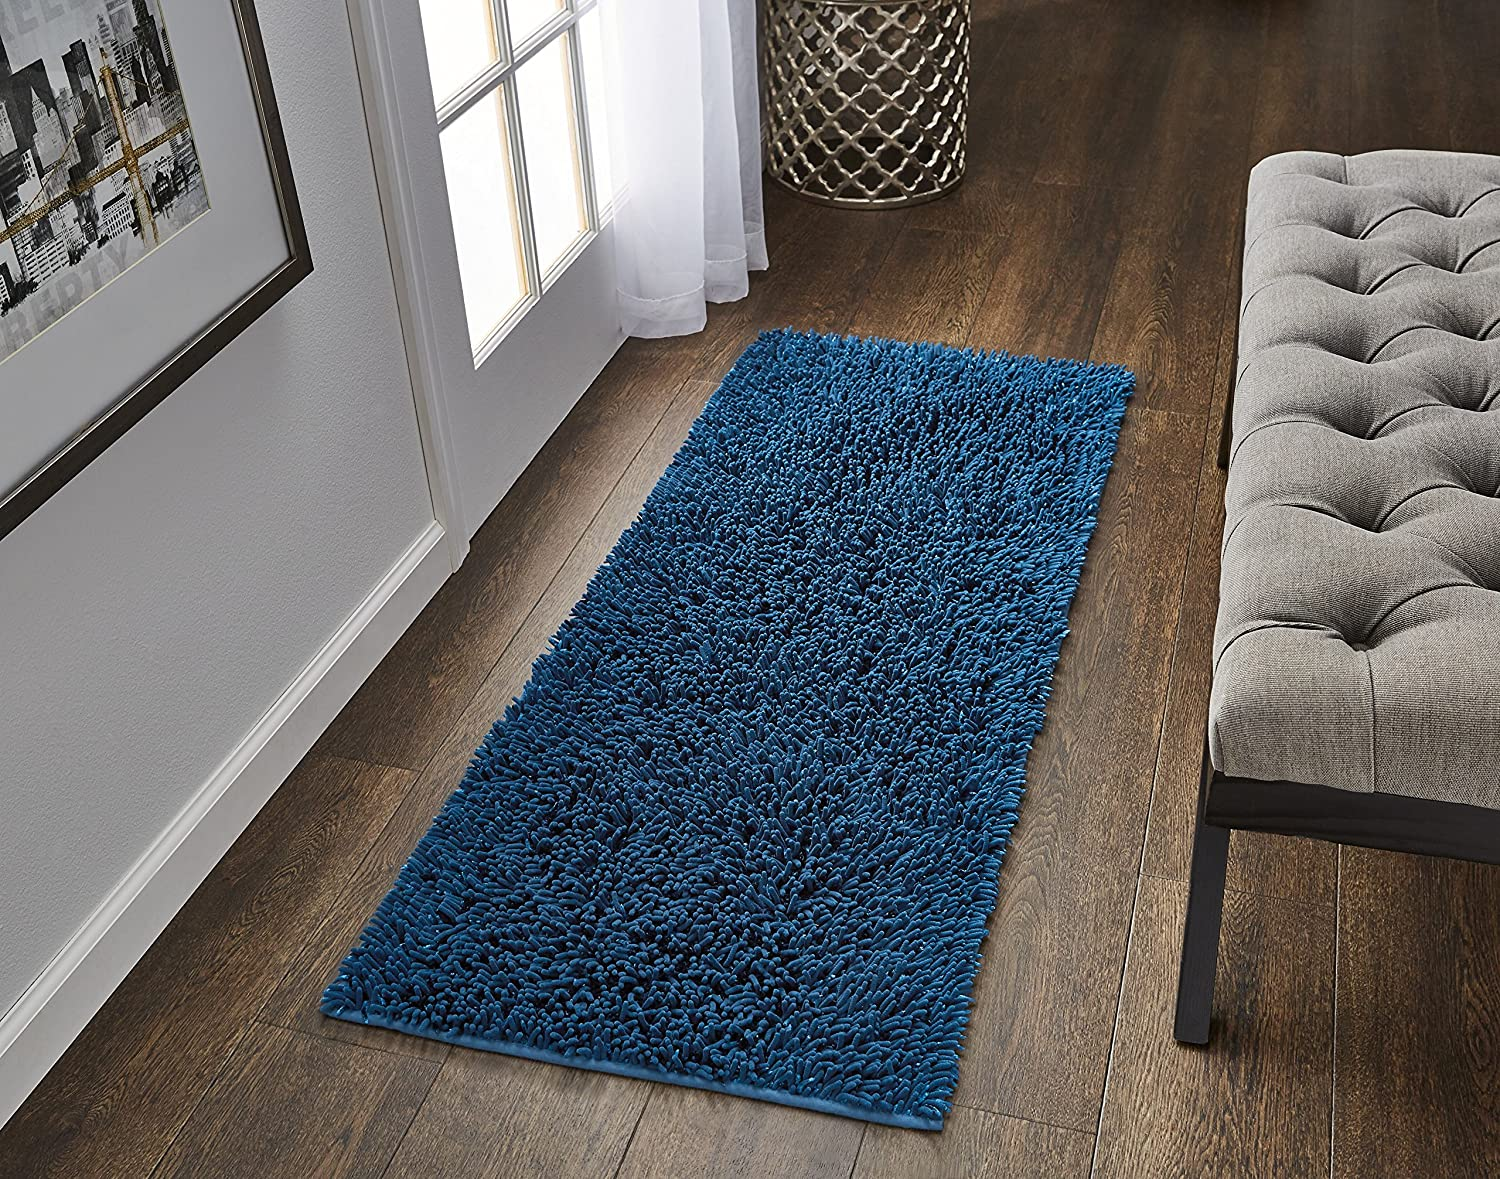 VCNY Home Gala Bathroom Rug 24 x 60 Coral